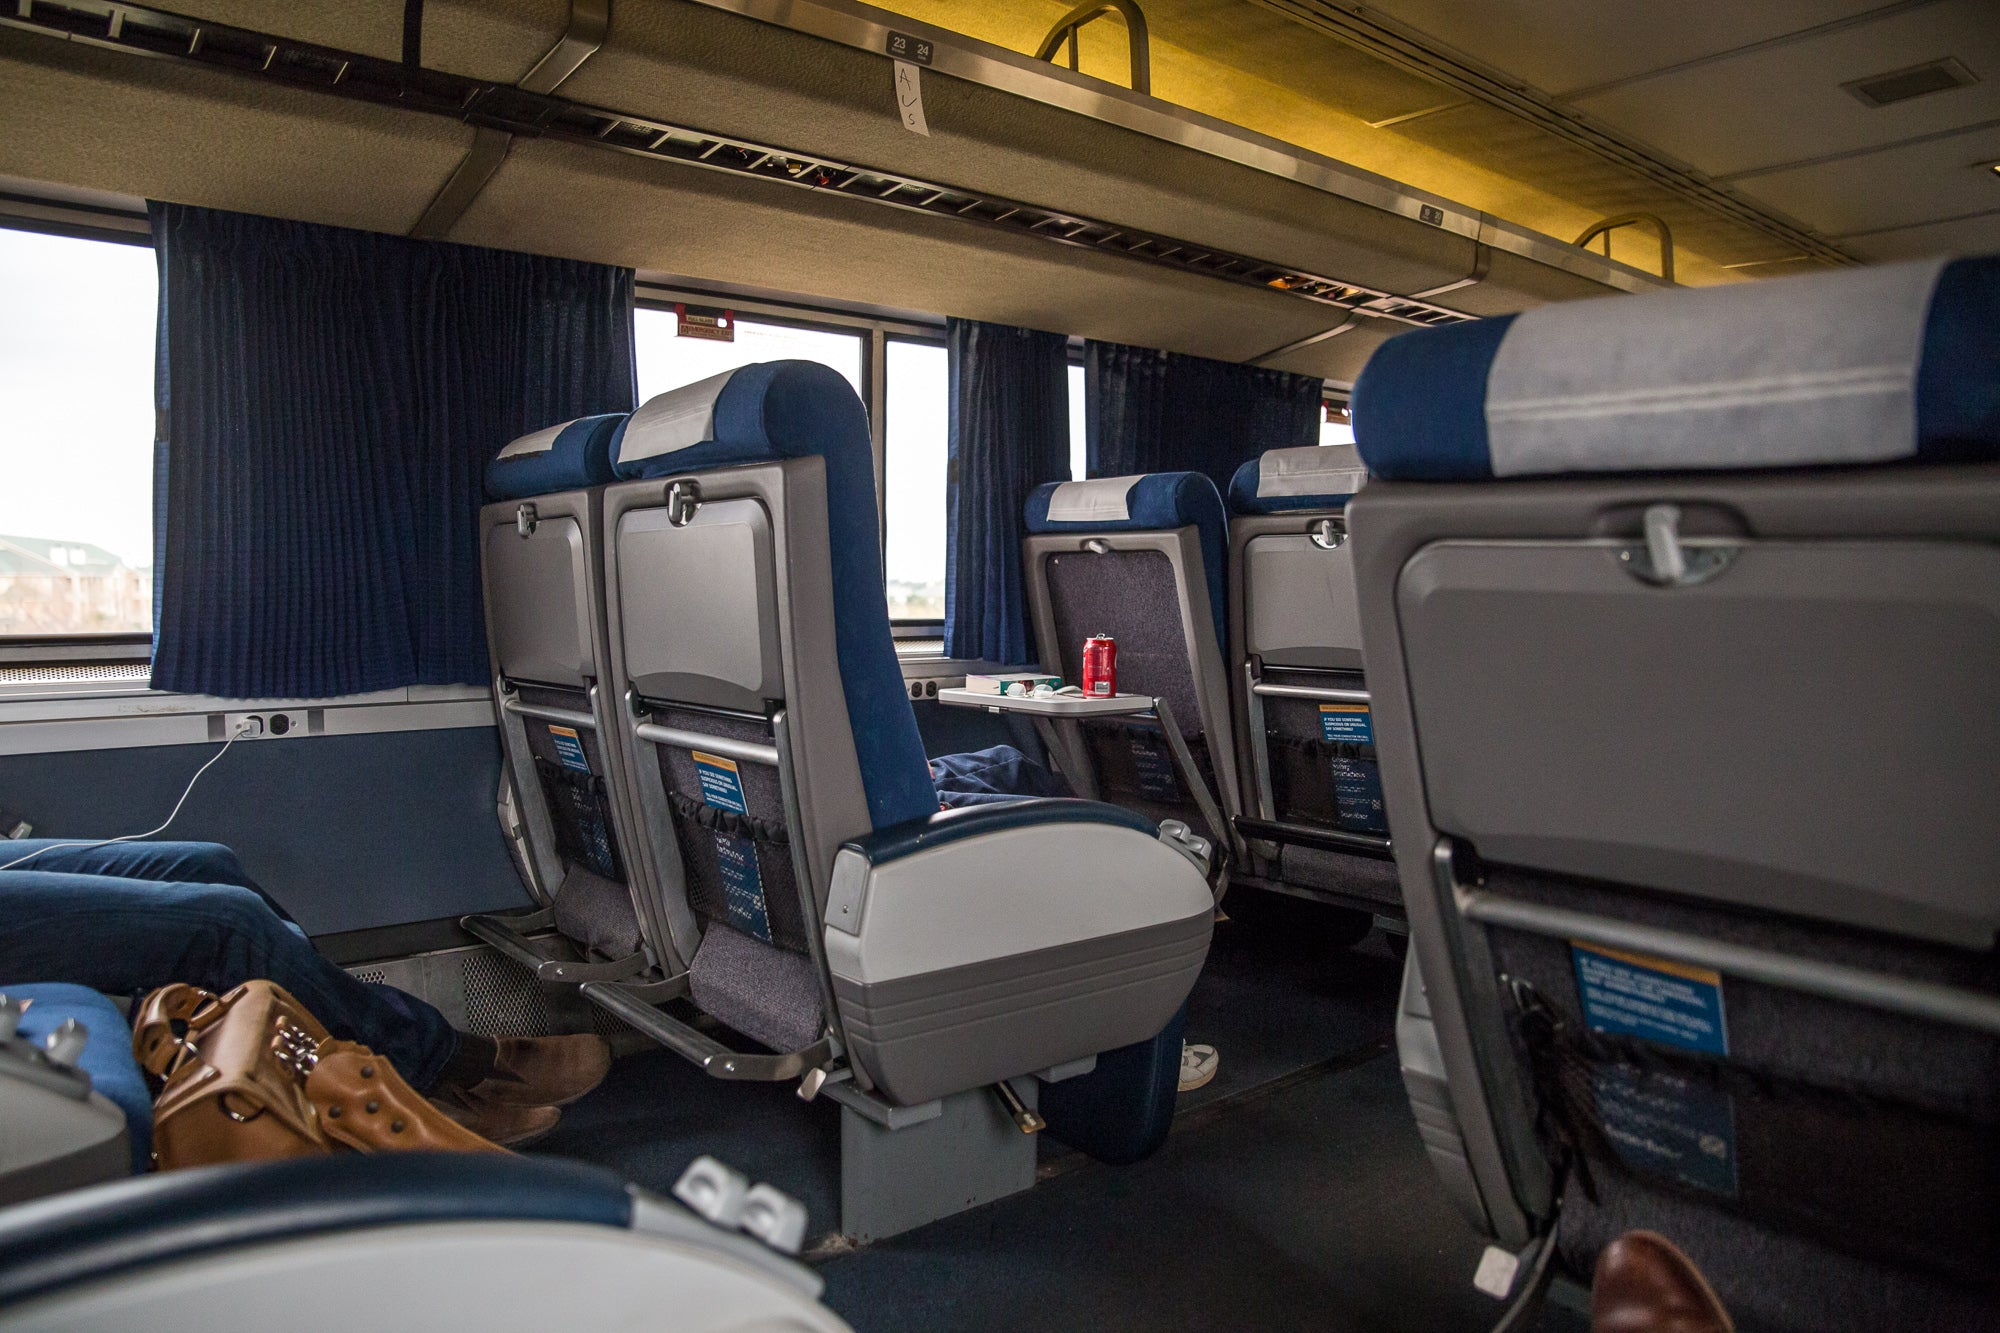 Seating Inside an Amtrak Train